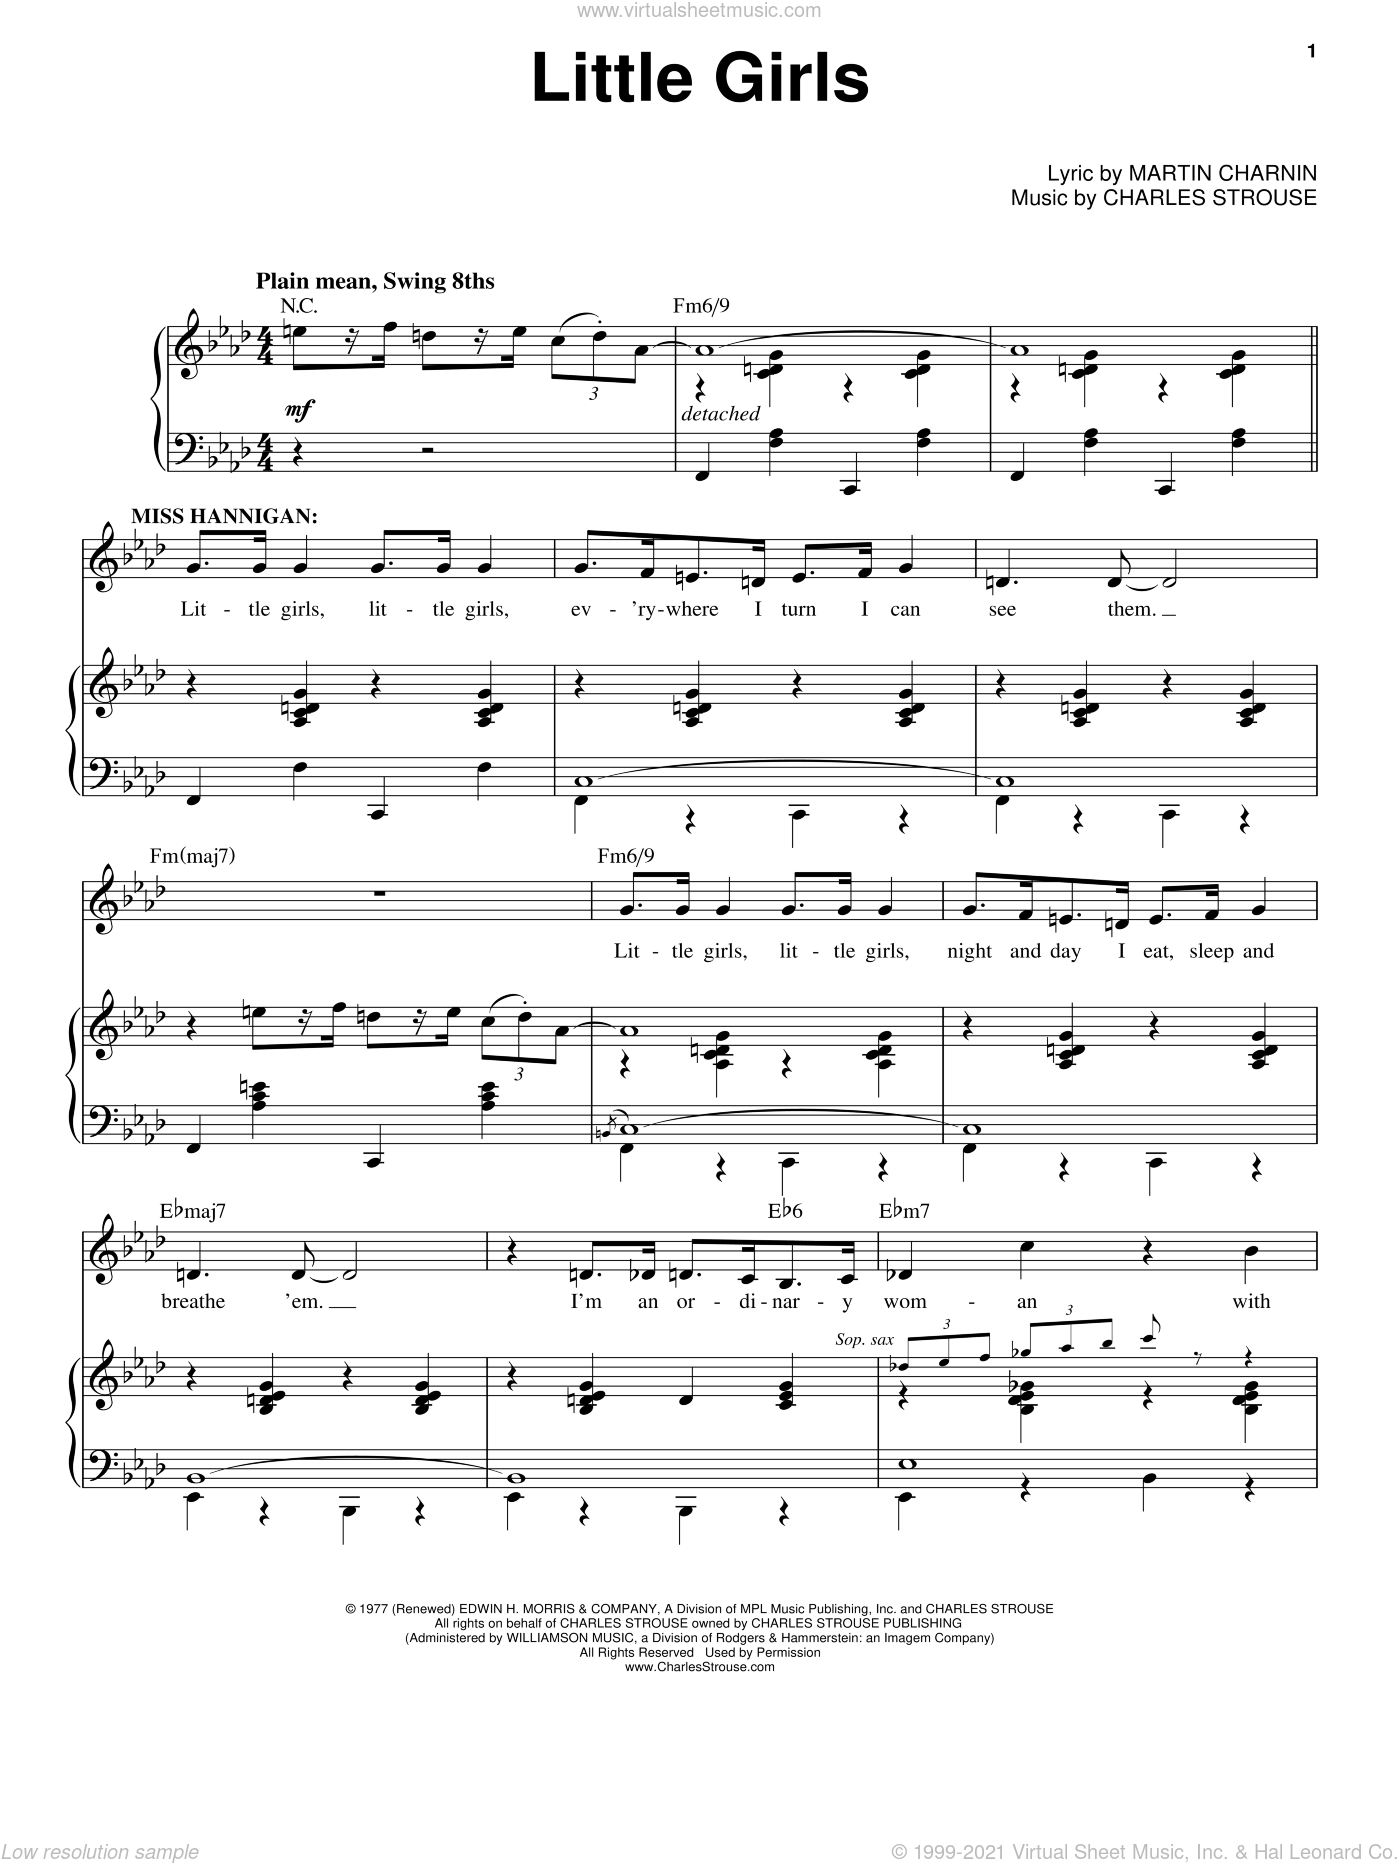 Little Girls sheet music for voice, piano or guitar by Charles Strouse, intermediate skill level